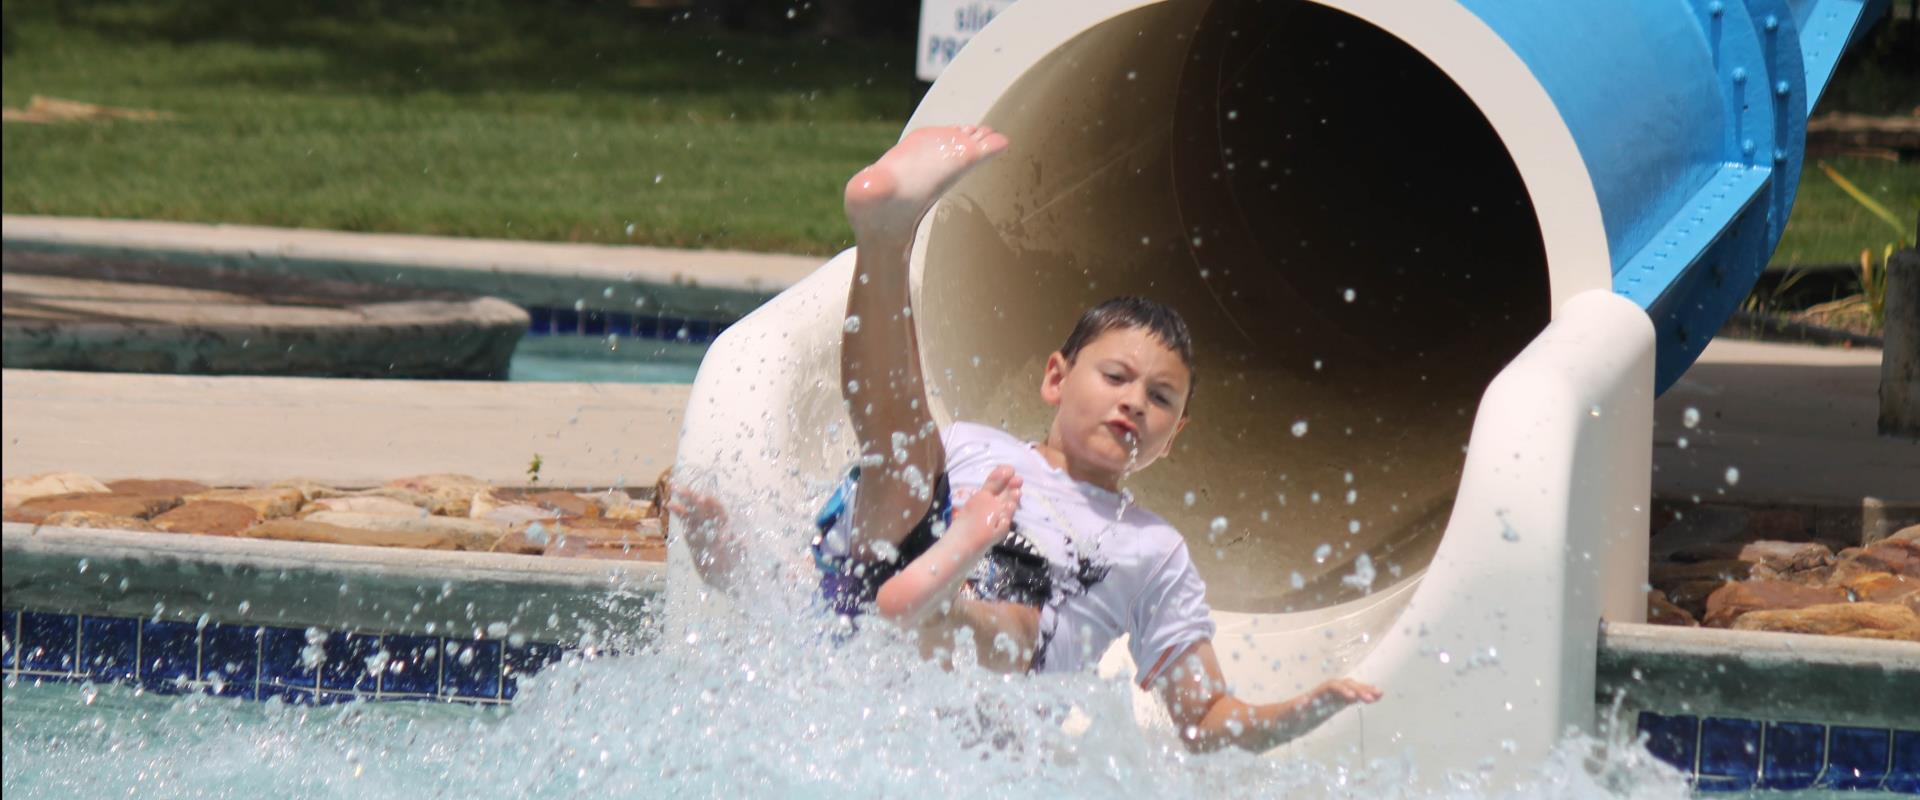 child coming out of water slide